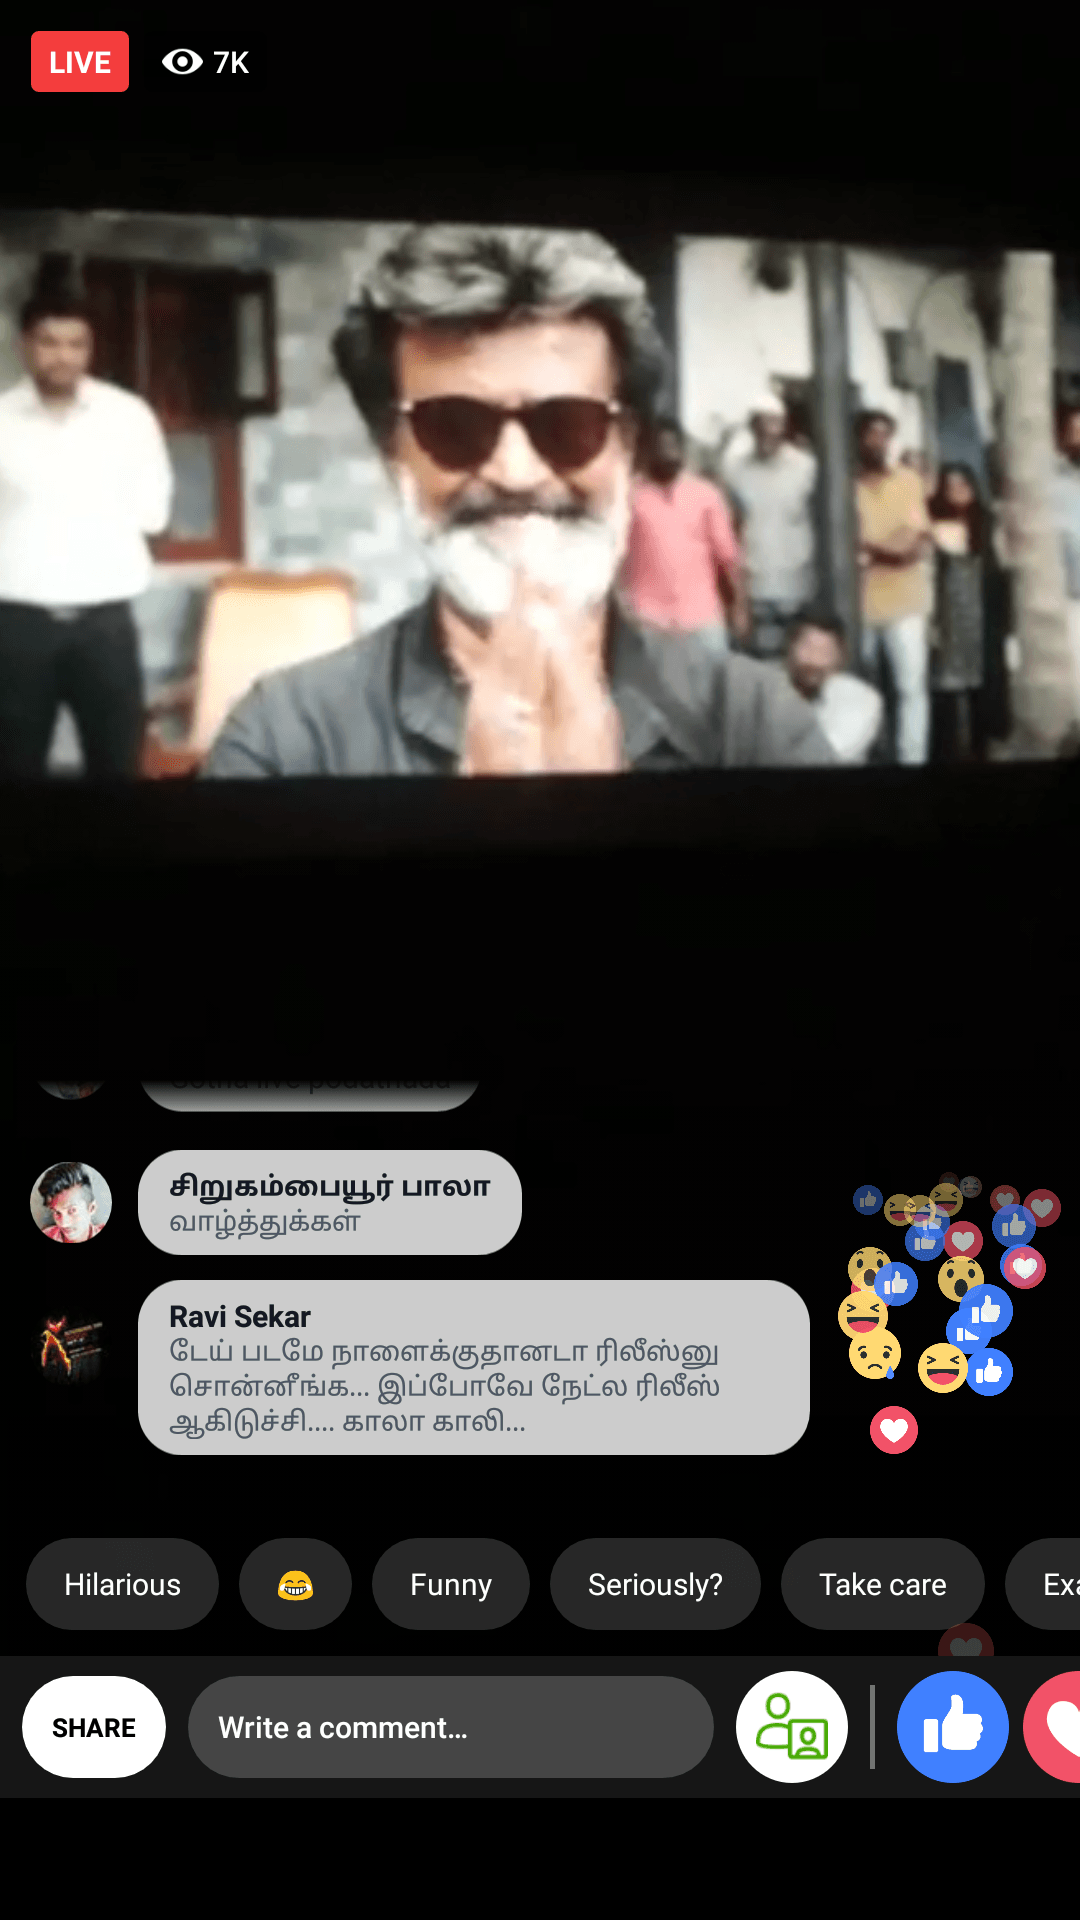 43 Minutes of Kaala Streamed Live online | Gets arrested 3